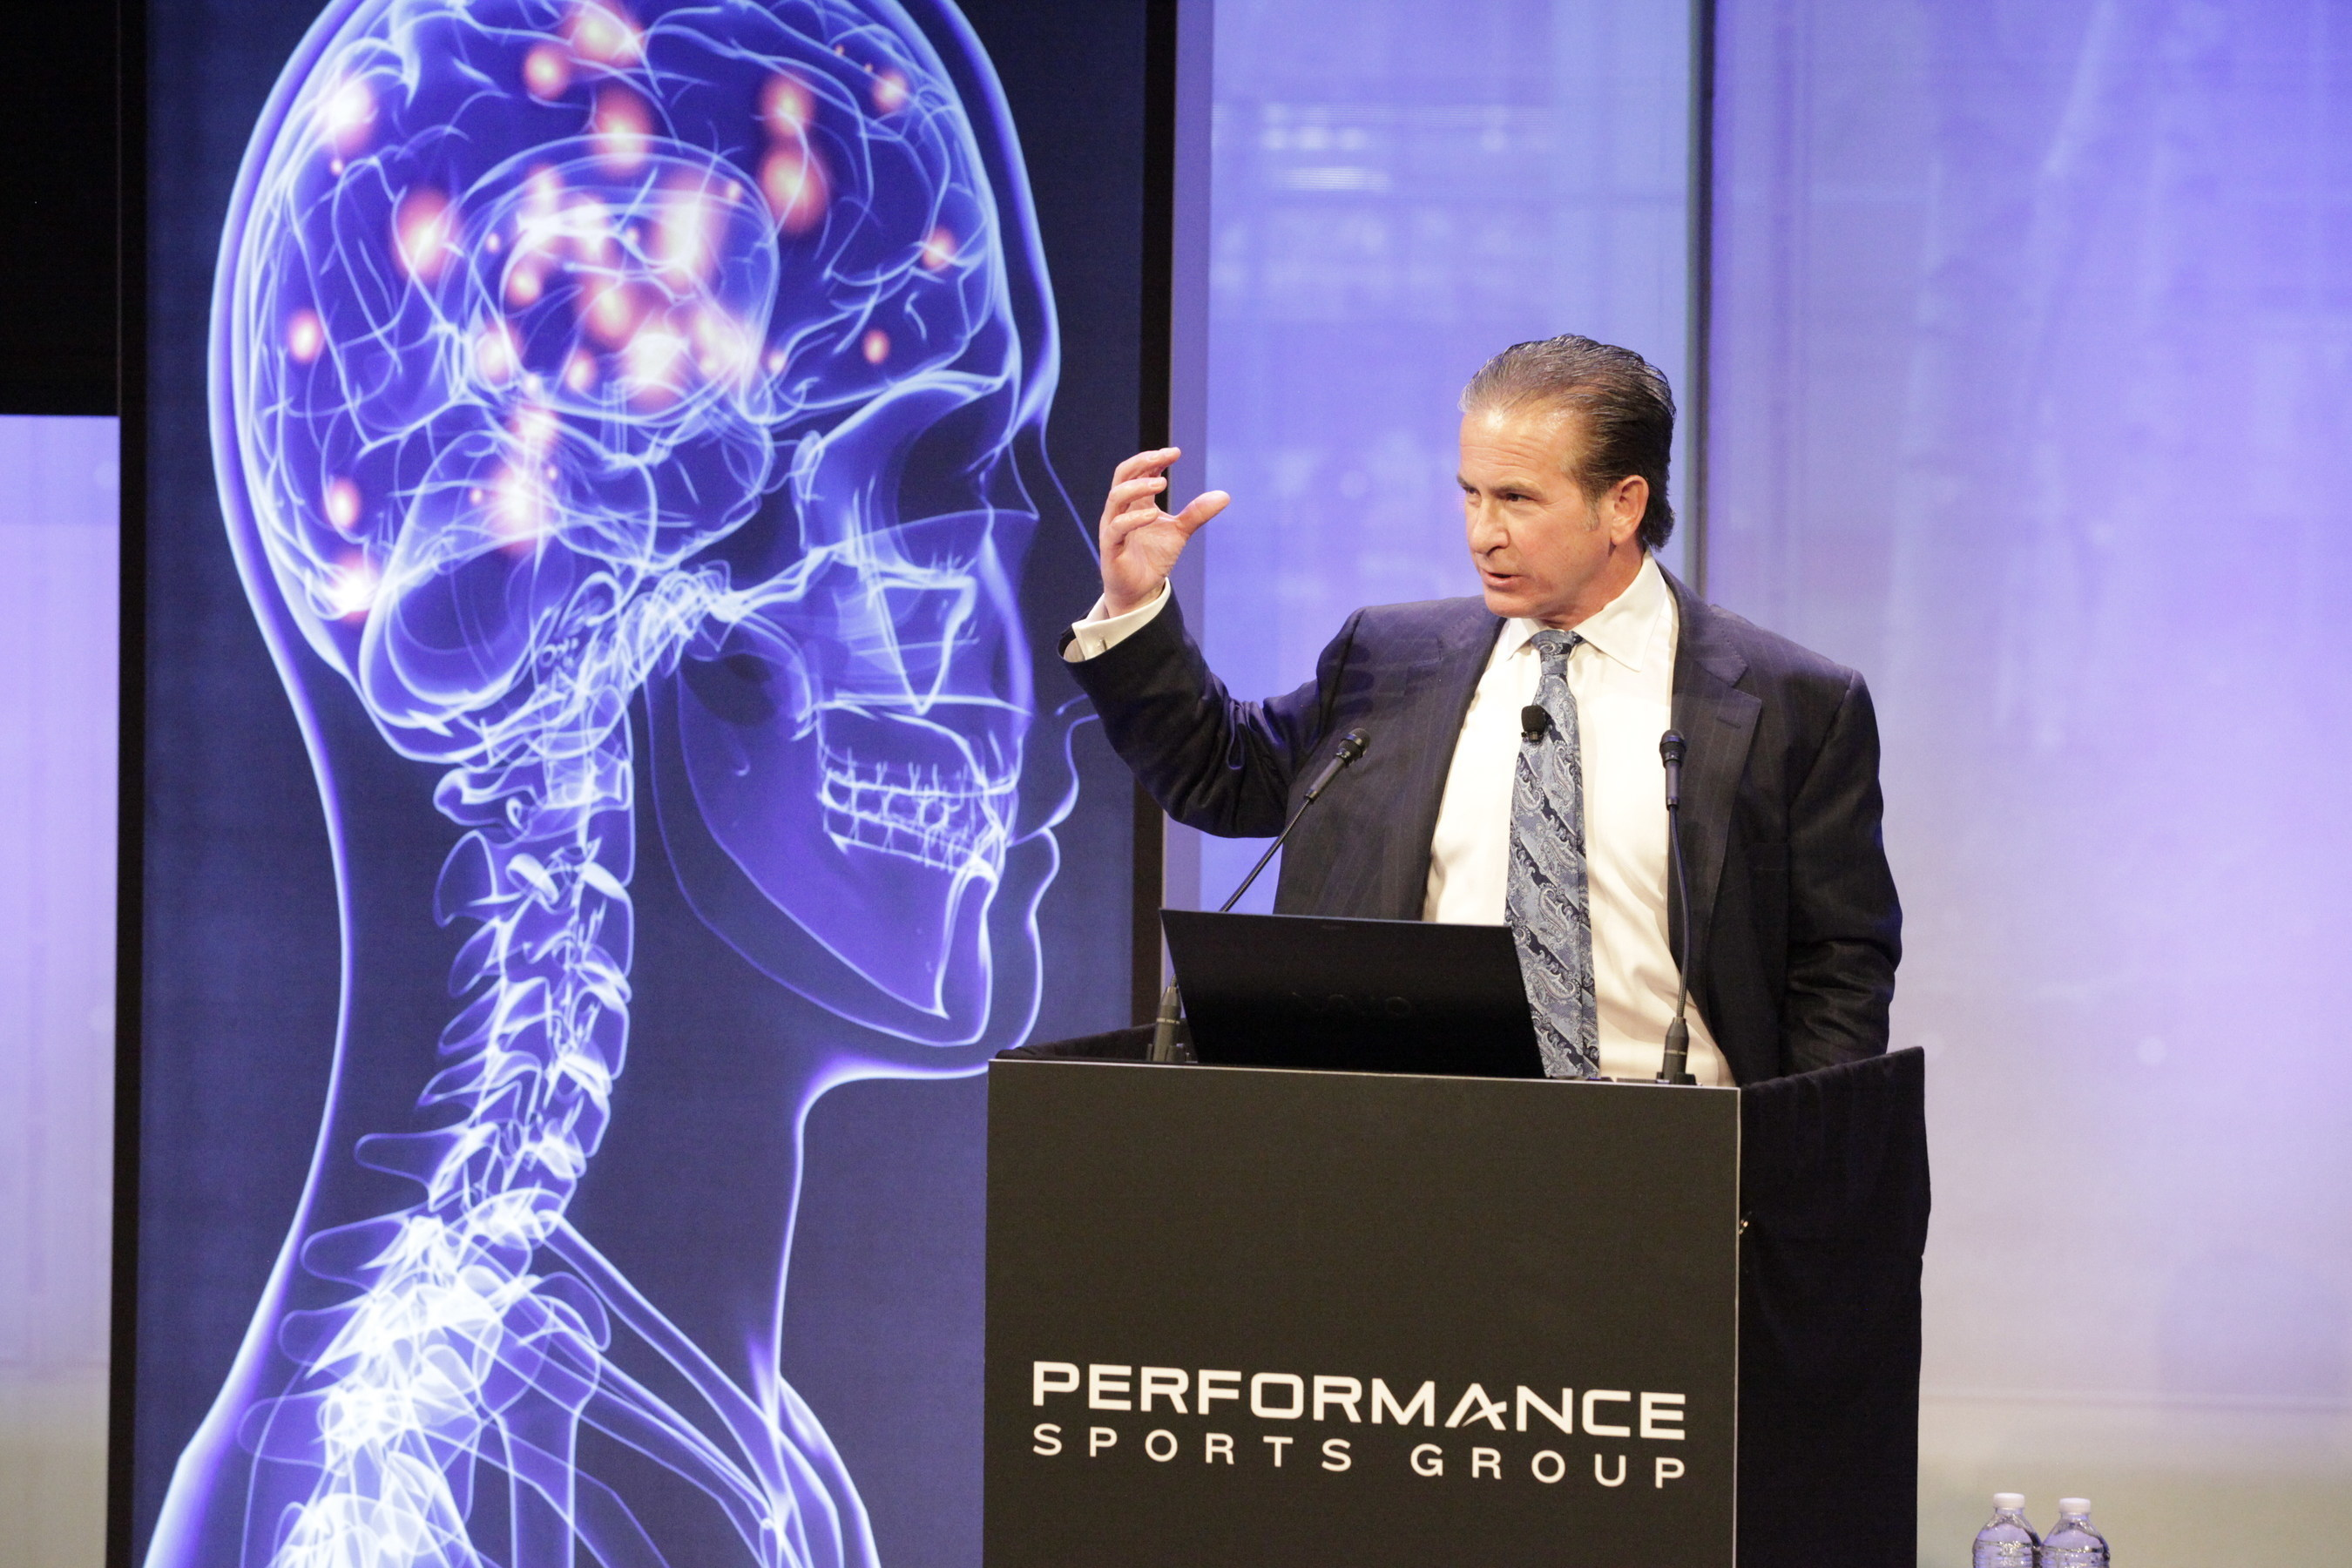 At a Performance Sports Group event earlier today in New York, leading neurosurgeon Dr. Julian Bales unveiled a new device designed to reduce mild traumatic brain injury (mTBI) in sports. The proprietary band, worn on the neck, is the first device of its kind to reduce the risk of mTBI internally by using the body's own physiology rather than external protective devices.